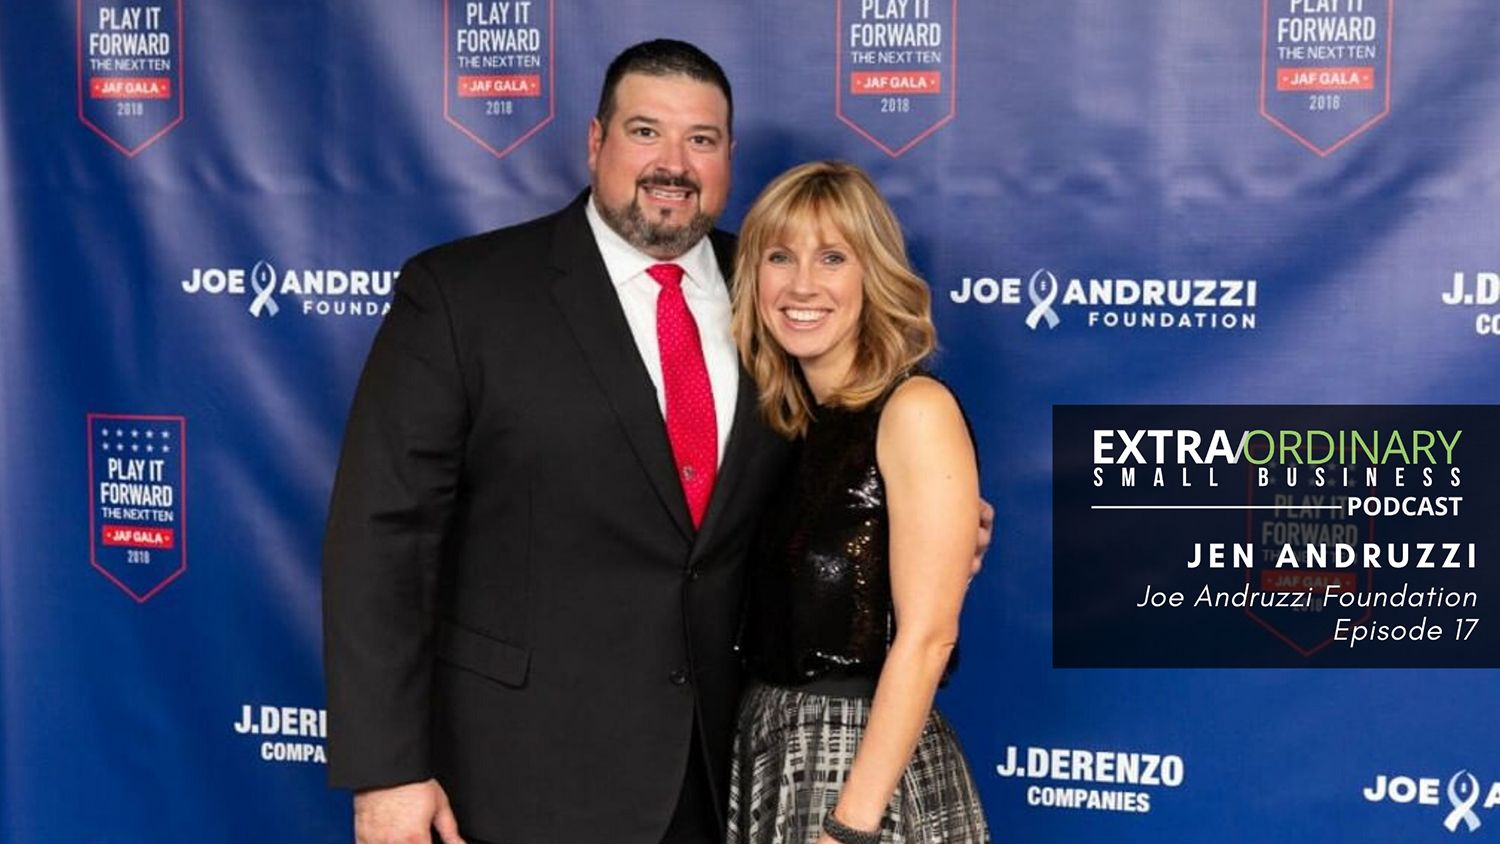 Jen Andruzzi, Joe Andruzzi Foundation, Guest